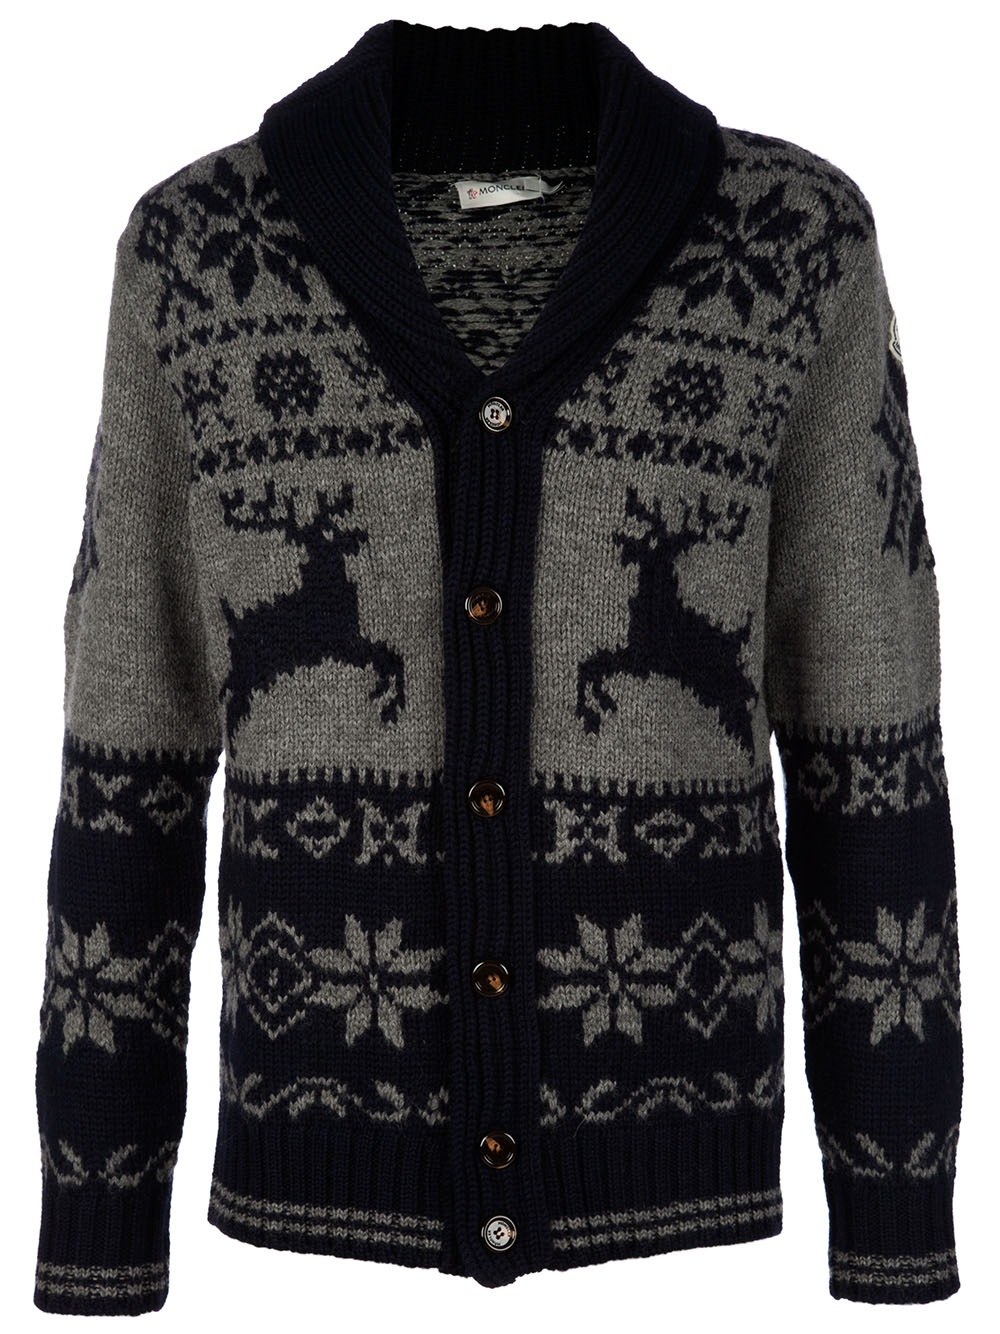 Find great deals on eBay for Reindeer Sweater Mens in Sweaters and Clothing for Men. Shop with confidence.